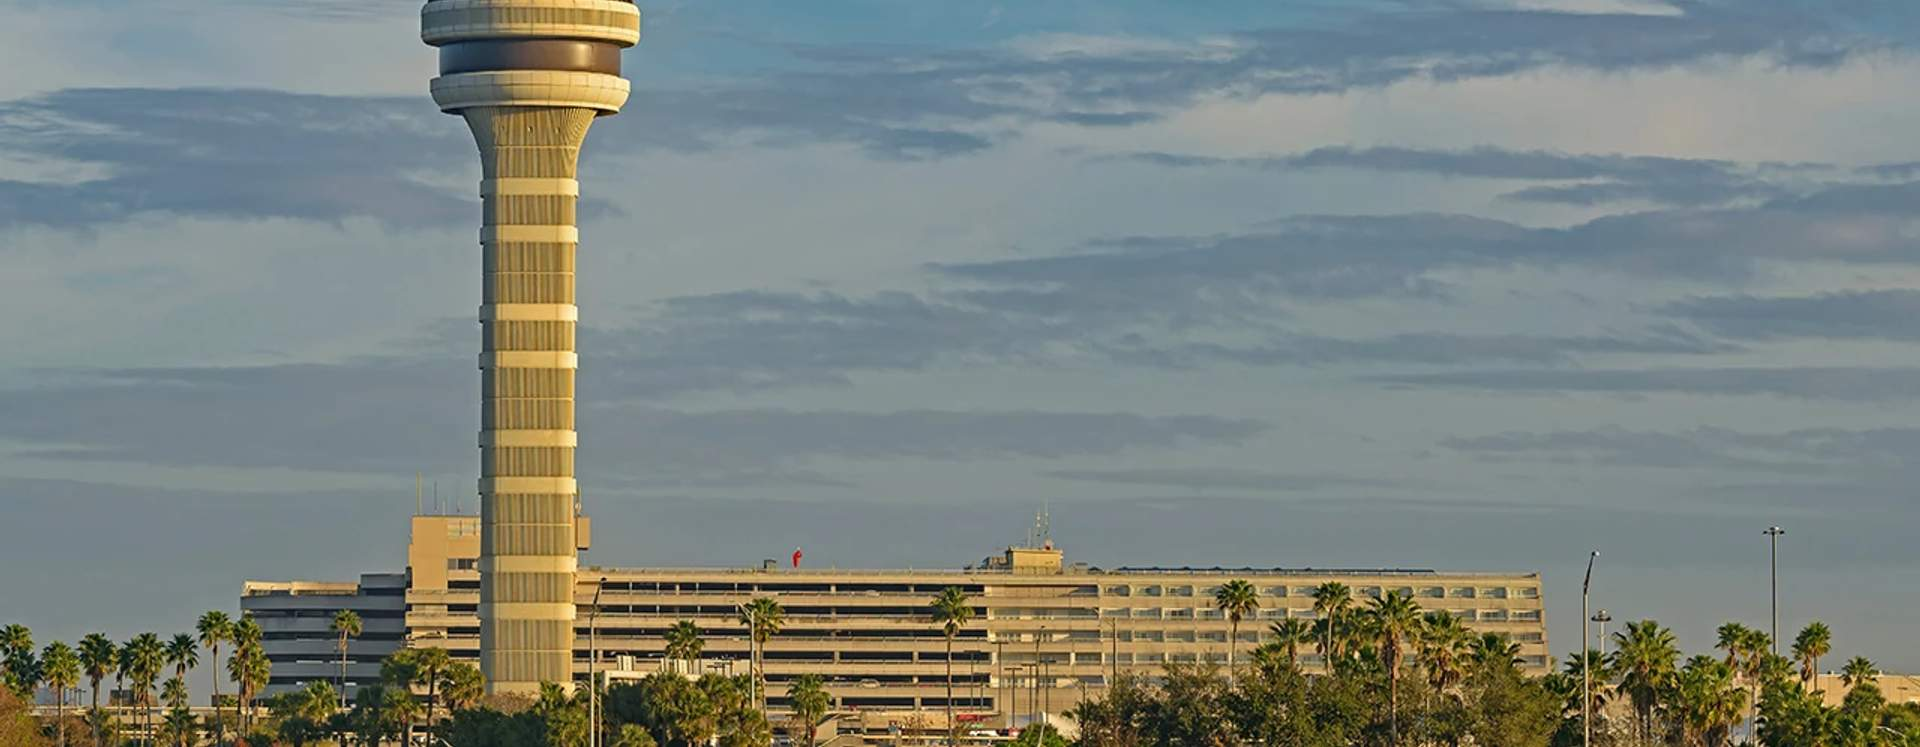 The skyline of the Orlando International Airport